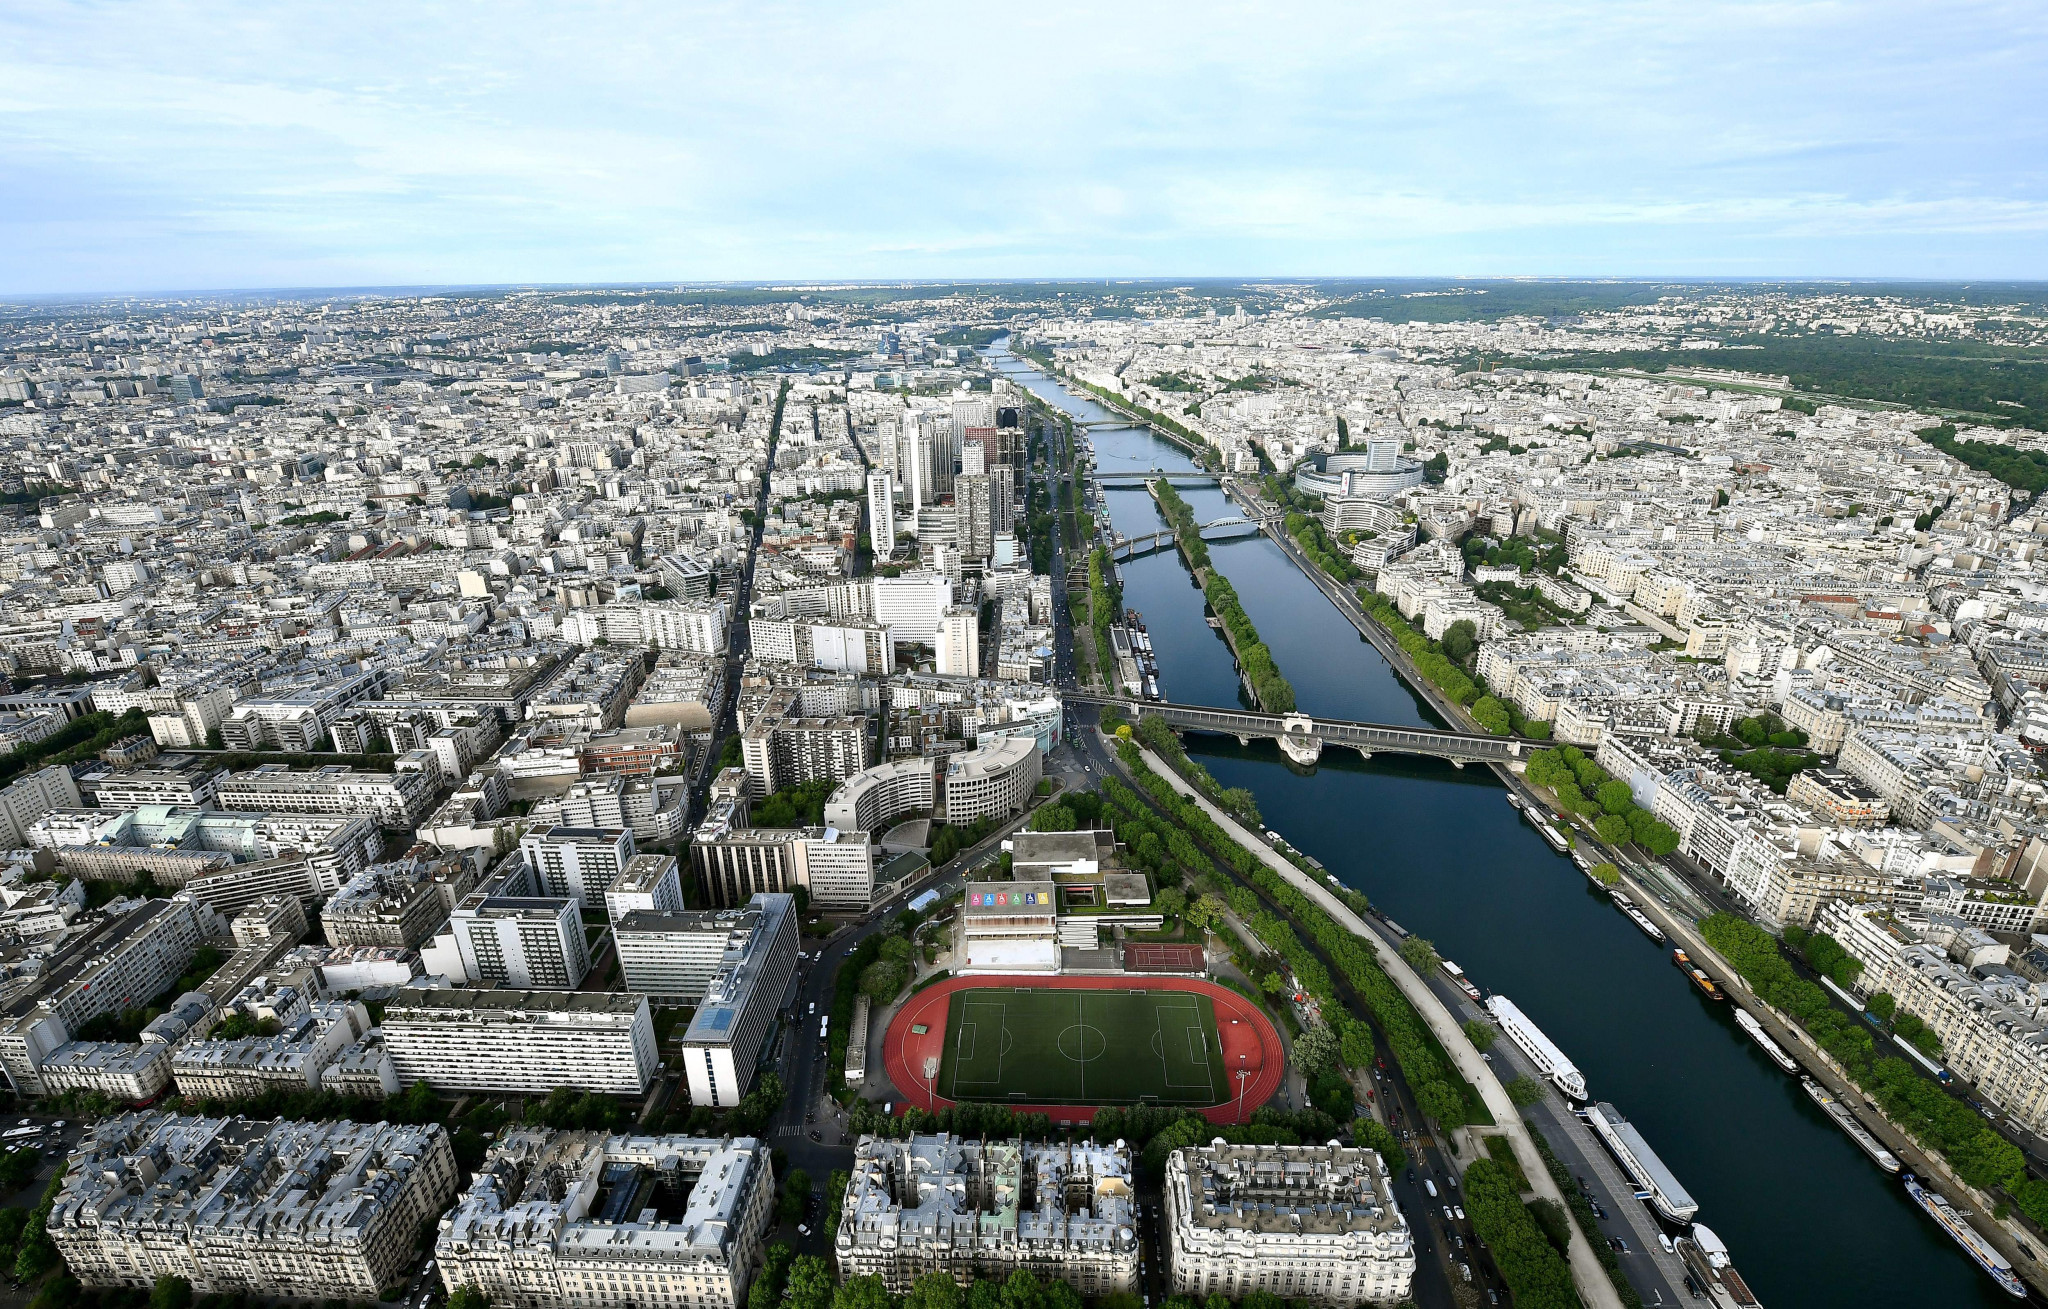 Arthur Germain-Hidalgo is set to swim the length of the River Seine from June 6 to July 28 ©Getty Images